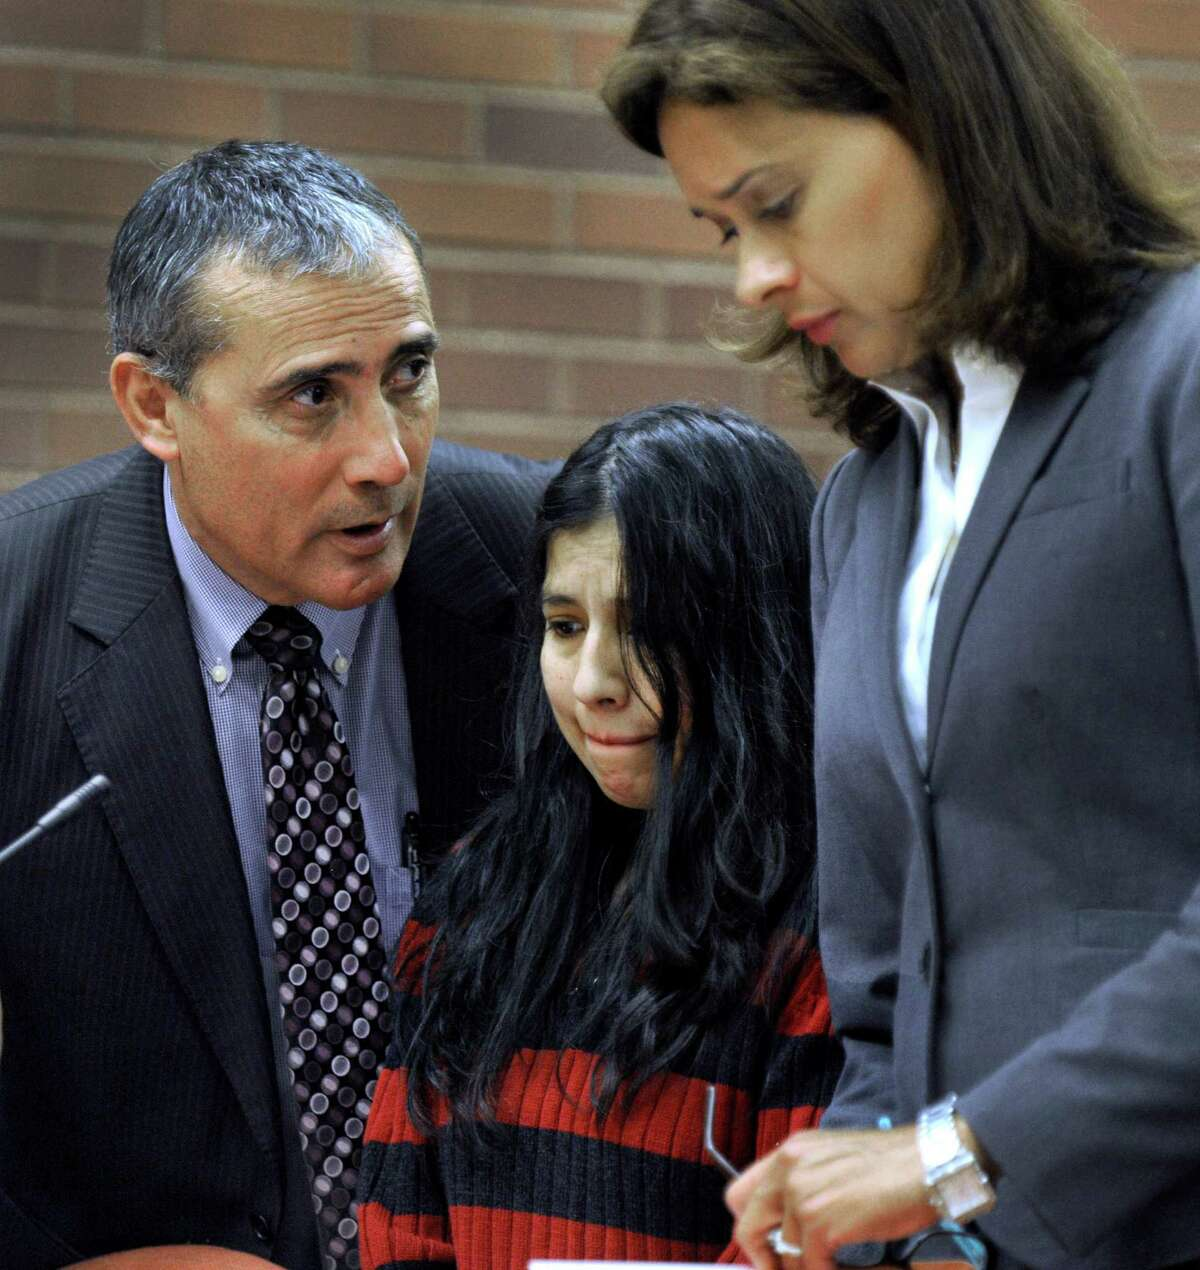 Lidia Quilligana, 31, center, who was accused in April of beating and burning a 3-year-old girl she was baby-sitting, was charged Friday with 15 additional counts of risk of injury to a minor. Quilligana will be back in state Superior Court in Danbury Tuesday where she has been aided by interpreter Javier Lillo, left, and represented by her attorney Jennifer Tunnard.